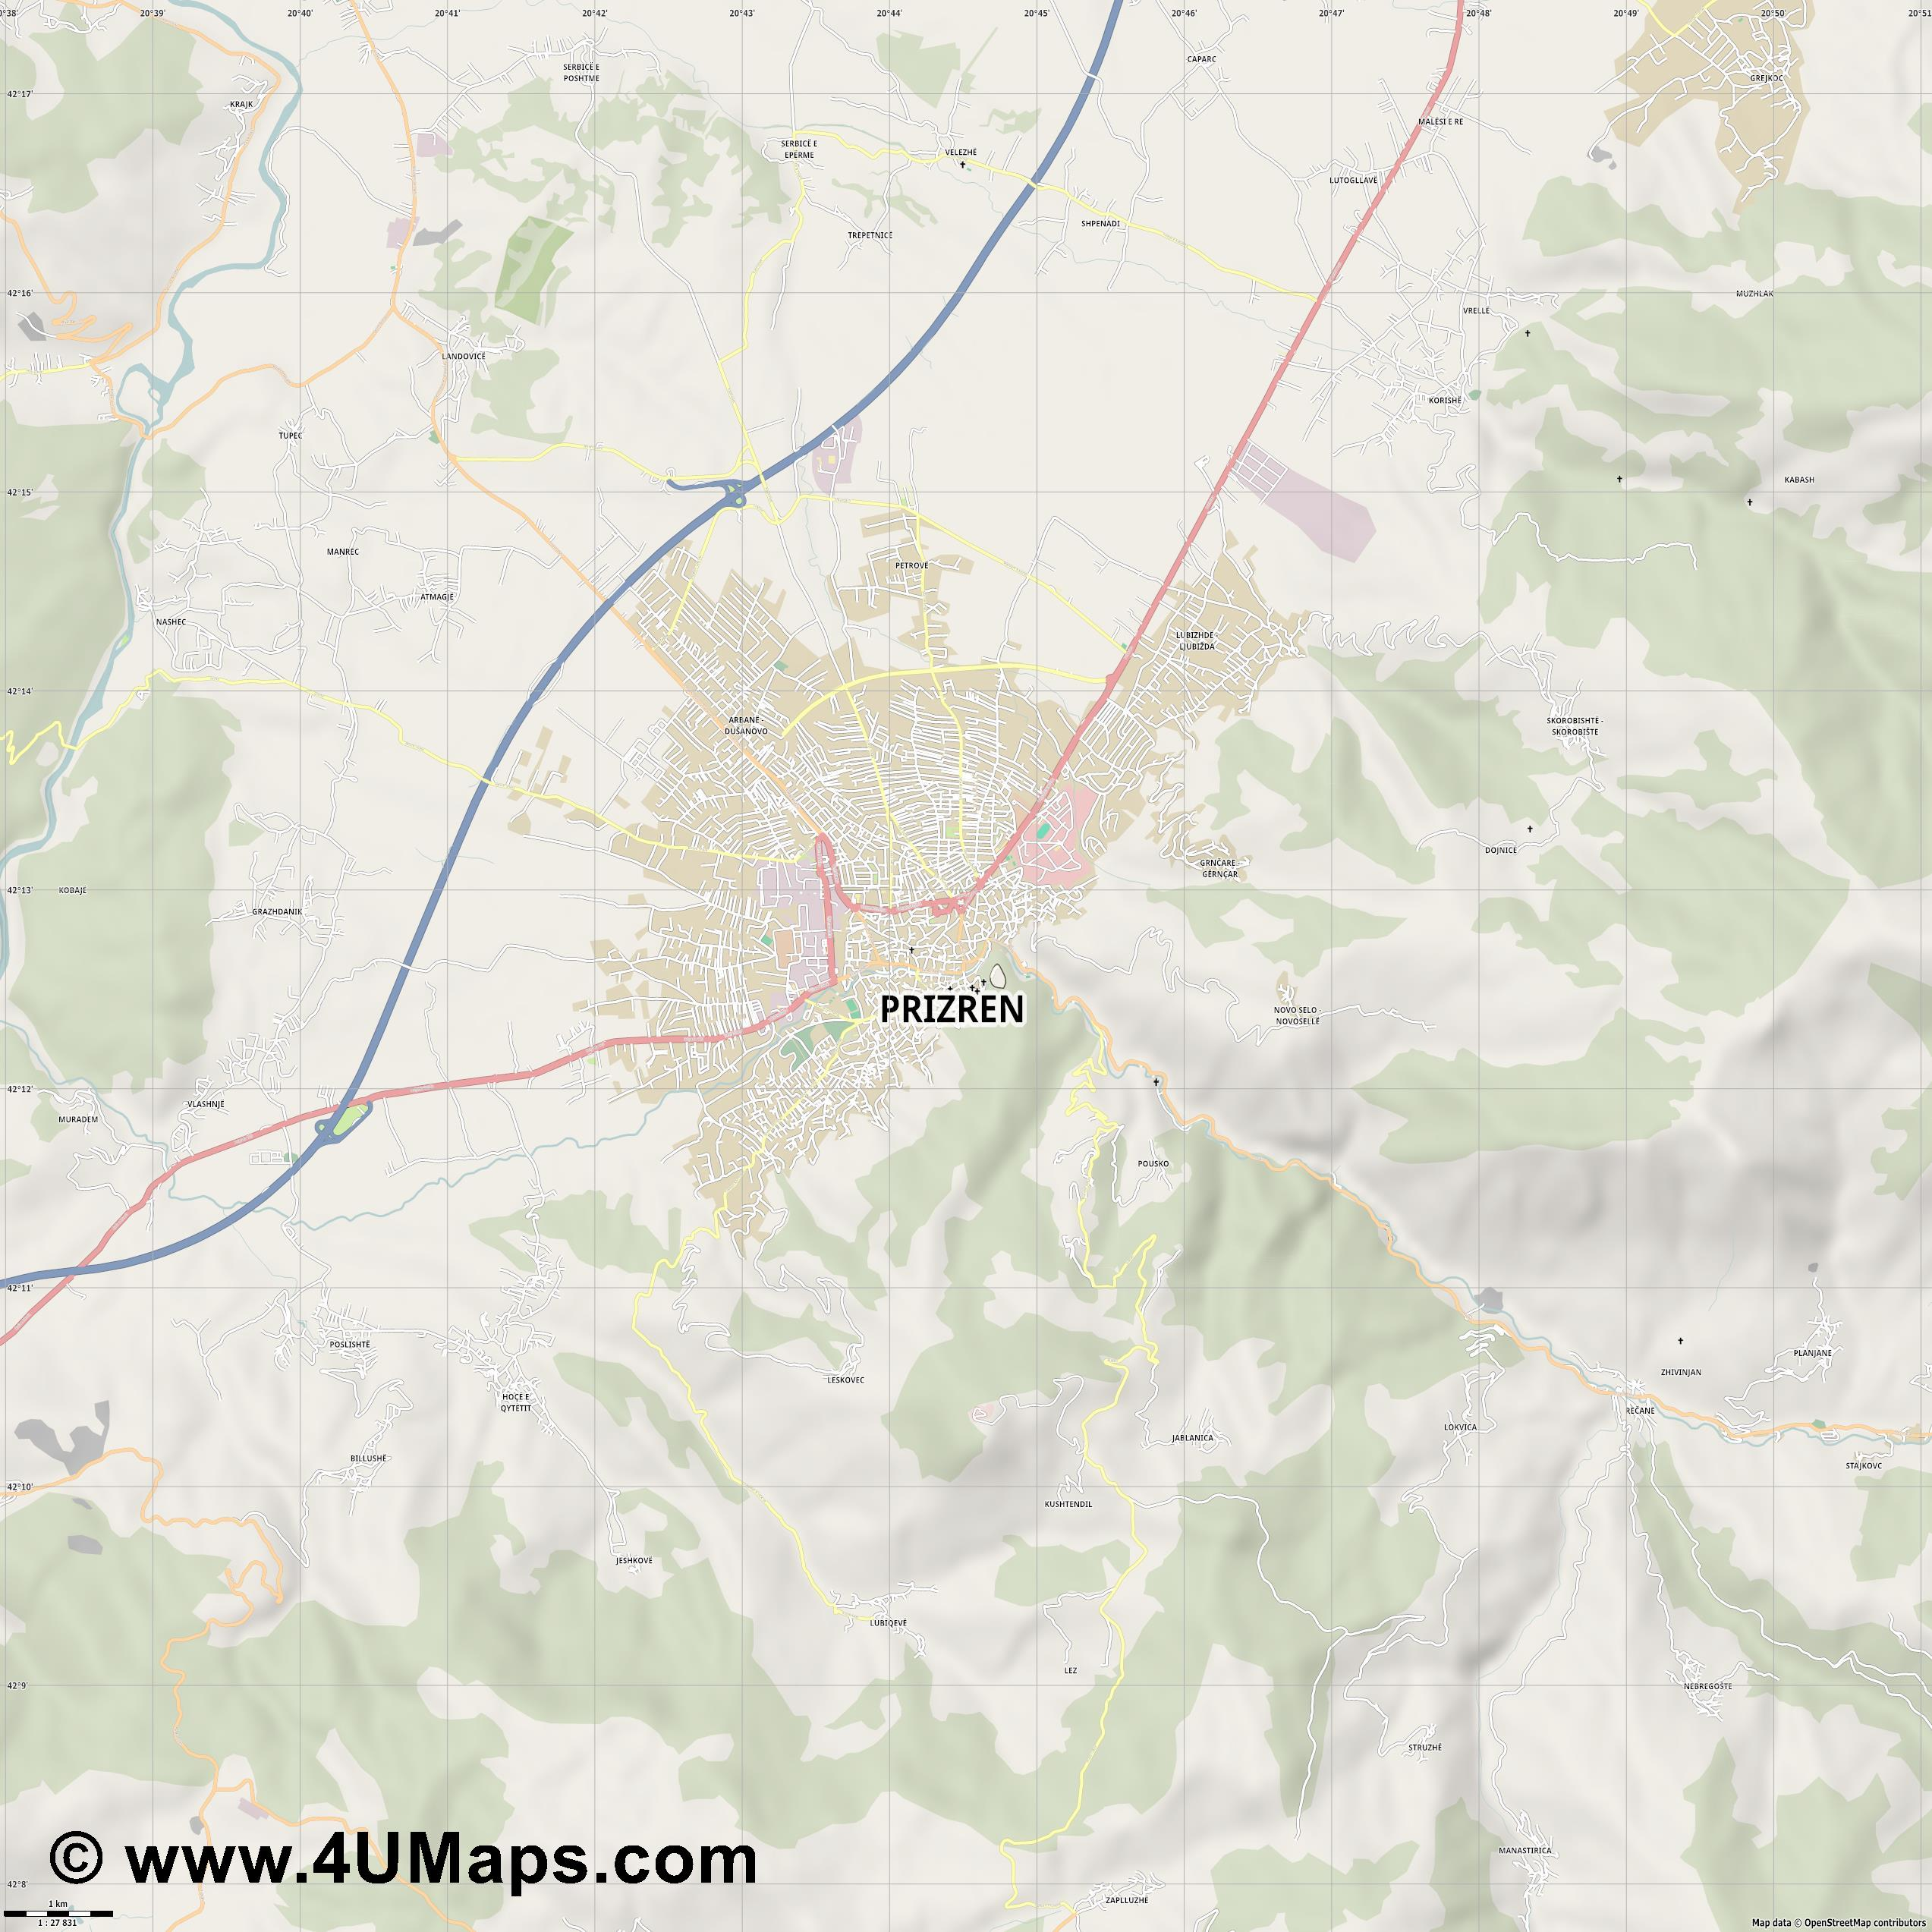 Prizren  jpg high detail, large area preview vector city map